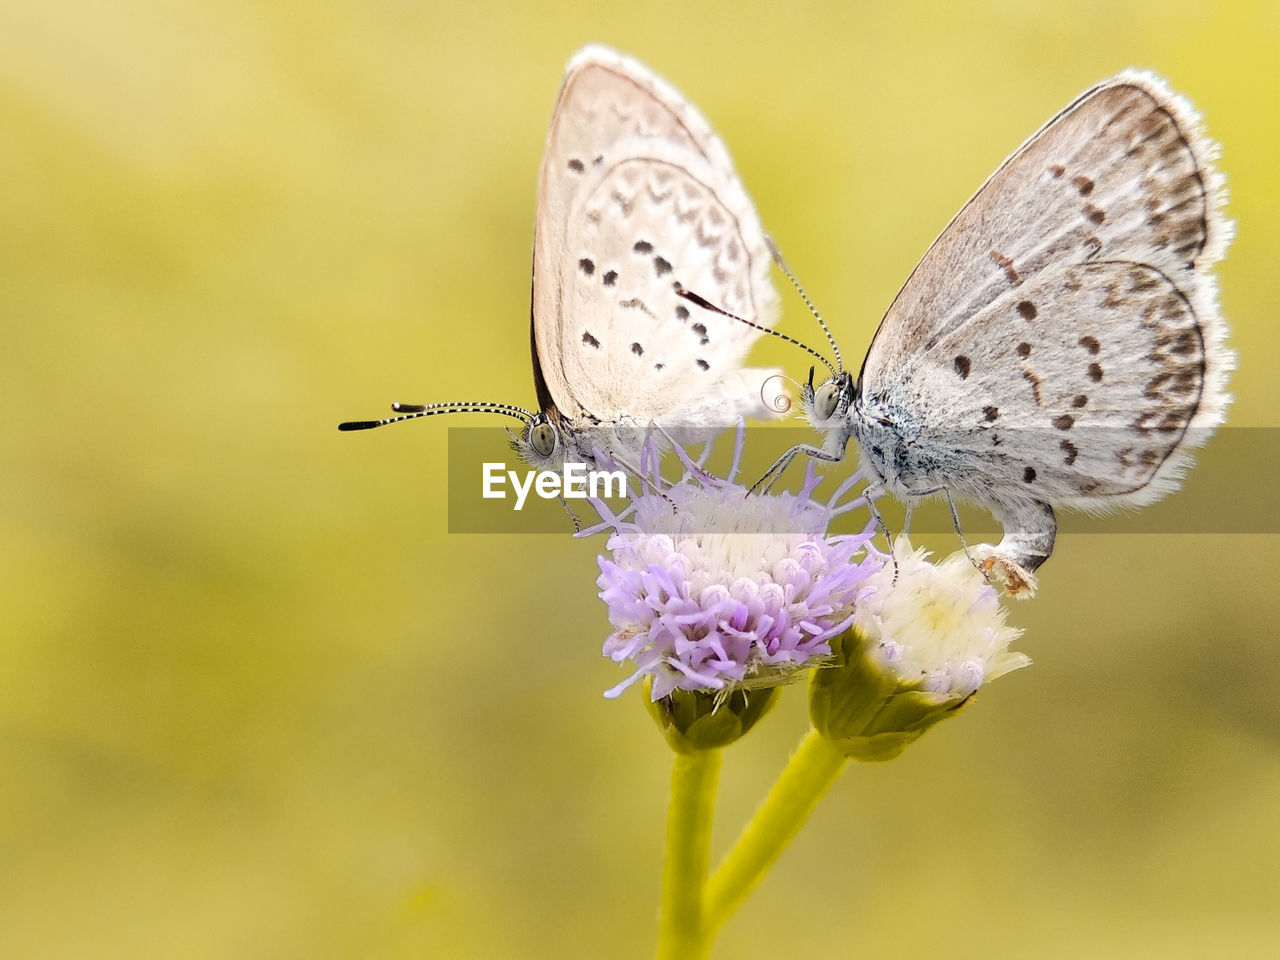 insect, invertebrate, flower, animal wildlife, animal themes, animal, animal wing, animals in the wild, flowering plant, one animal, beauty in nature, plant, butterfly - insect, close-up, fragility, vulnerability, pollination, focus on foreground, freshness, petal, flower head, no people, purple, butterfly